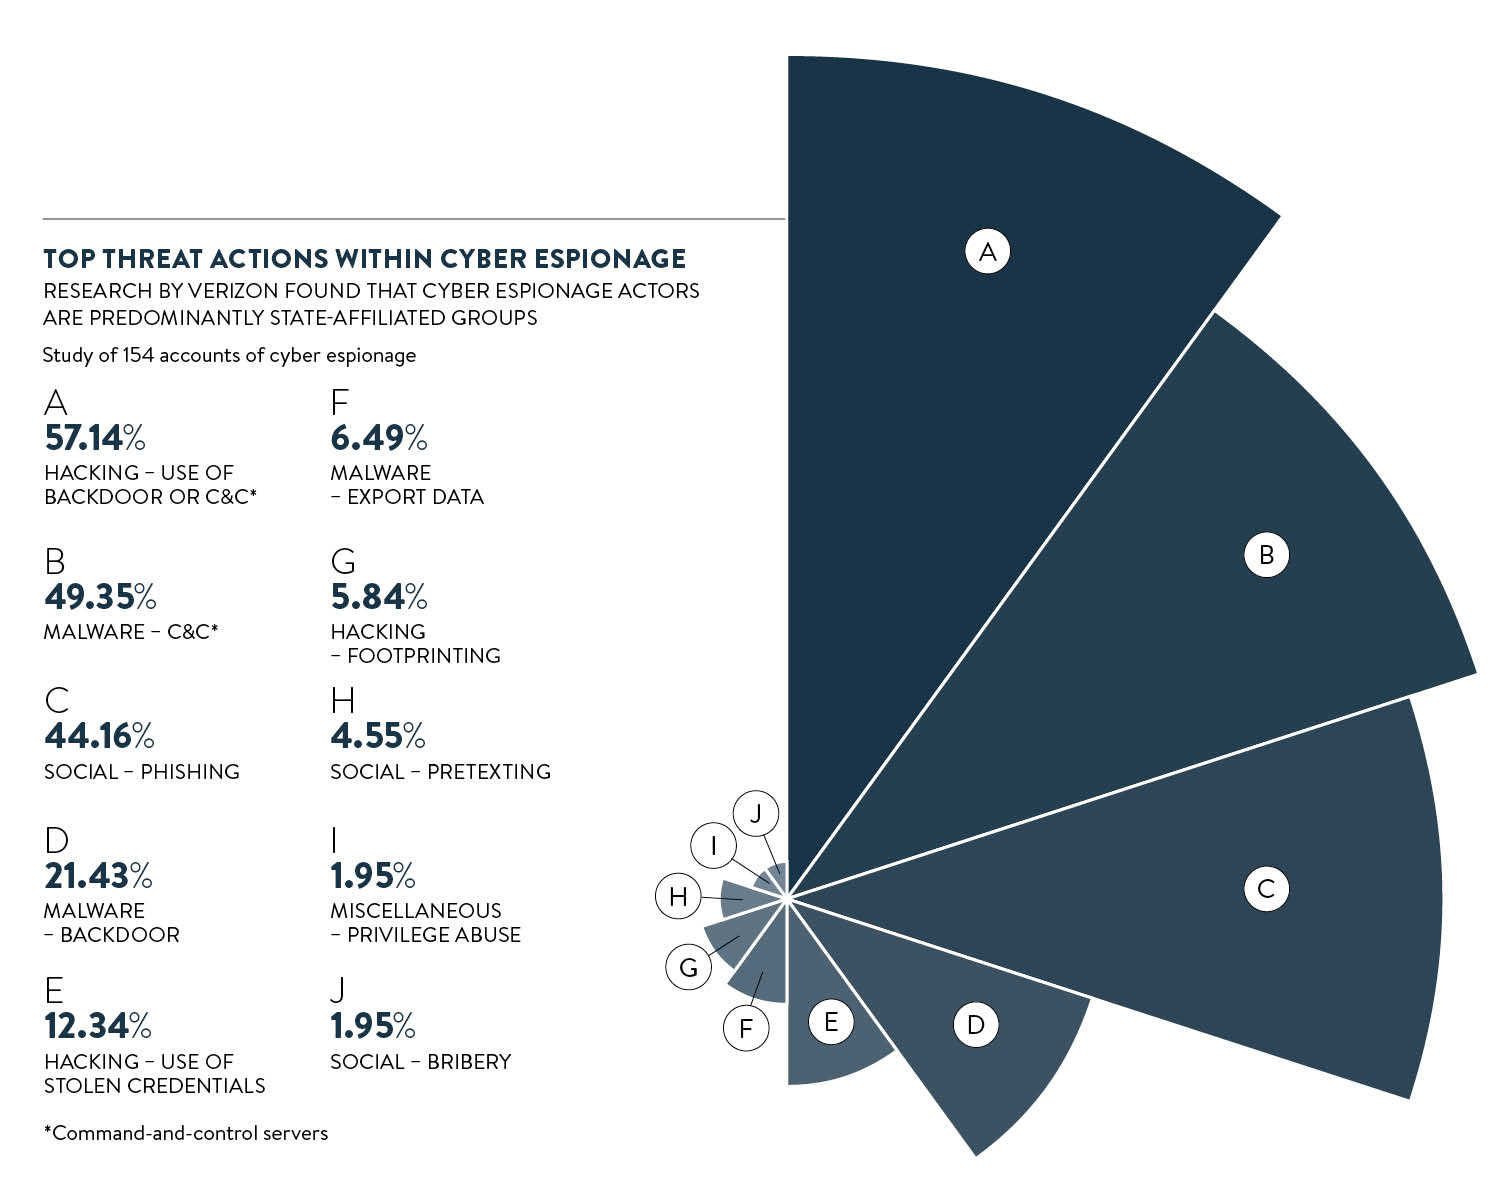 Top threat actions within cyber espionage